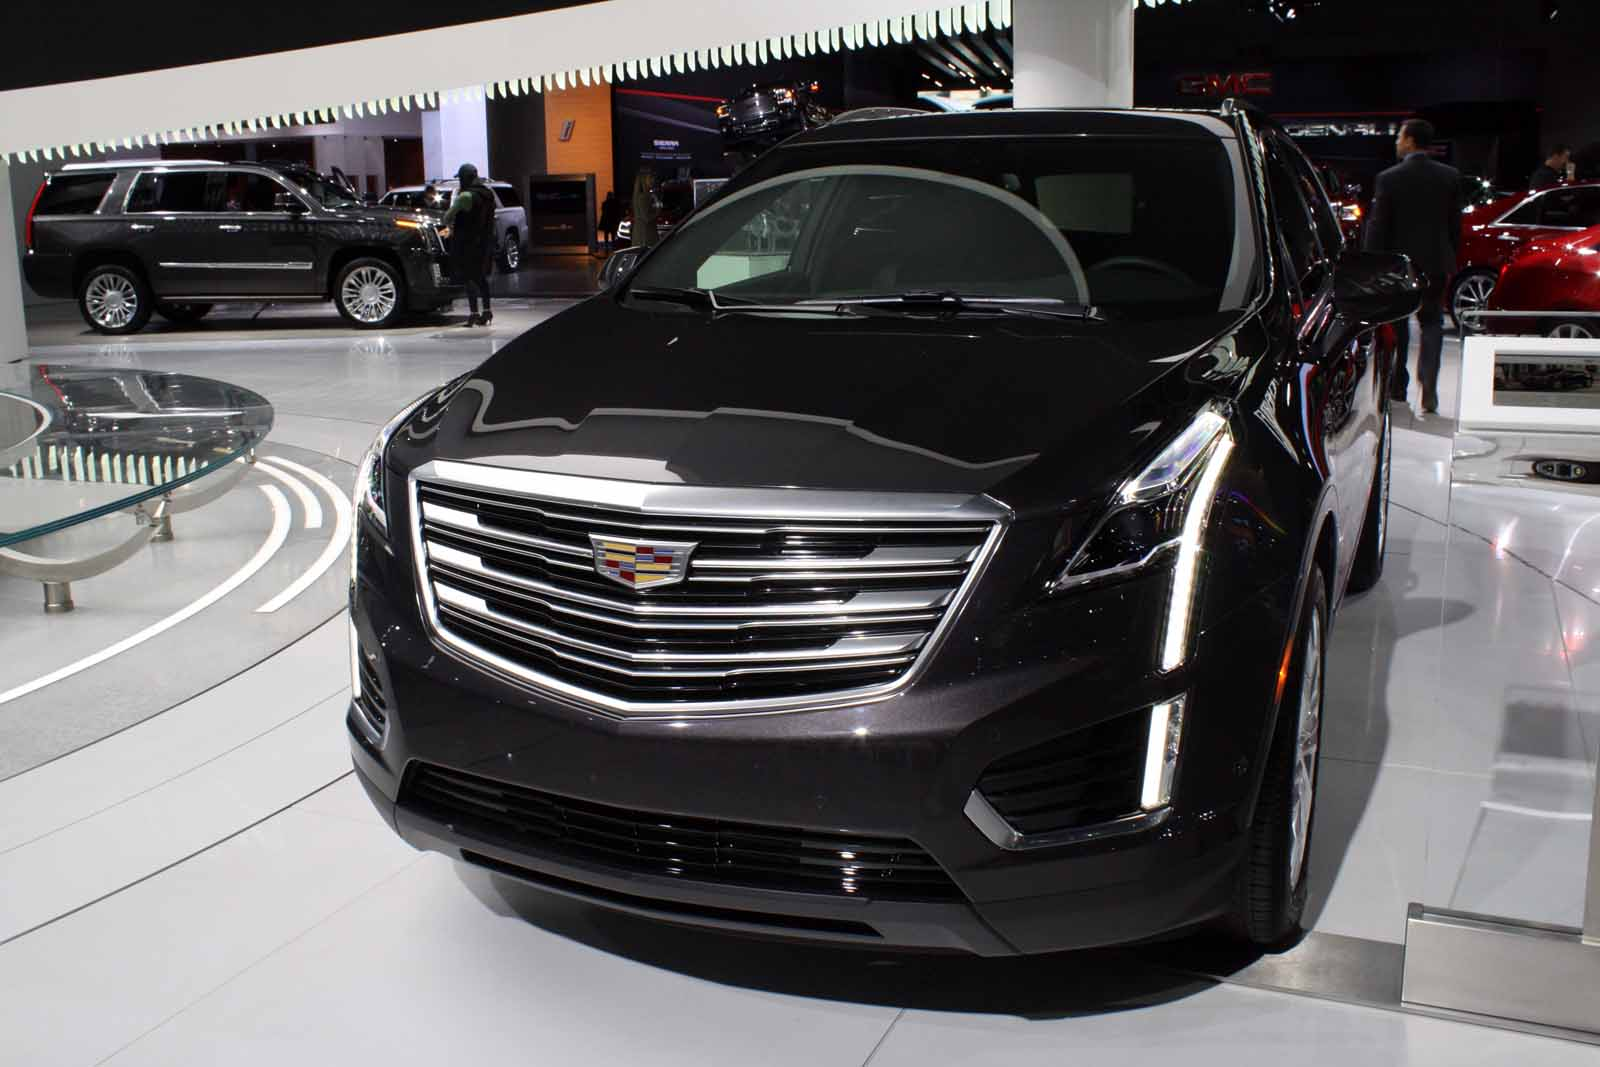 2020 Cadillac XT5 SUV Release Date and Specs